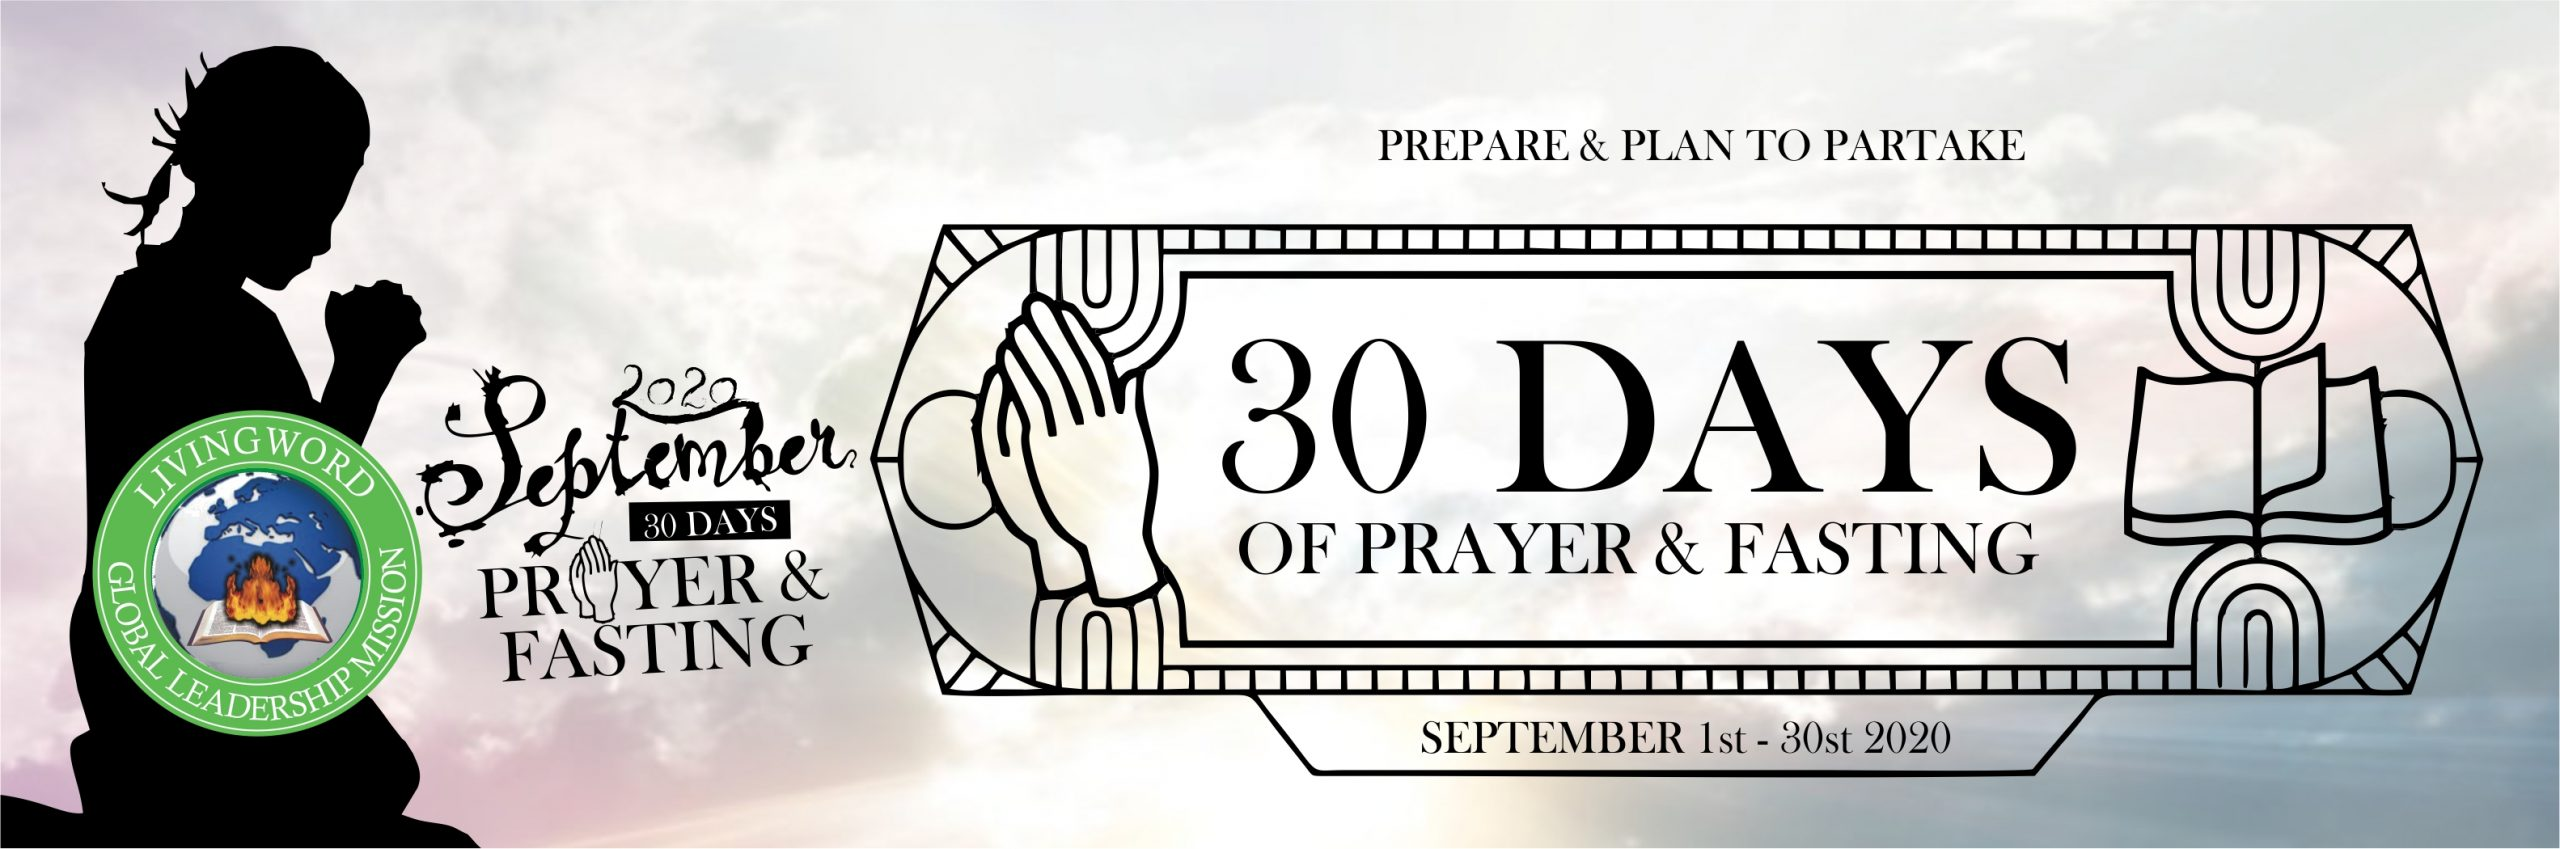 SEPT PRAYER & FASTING 2020